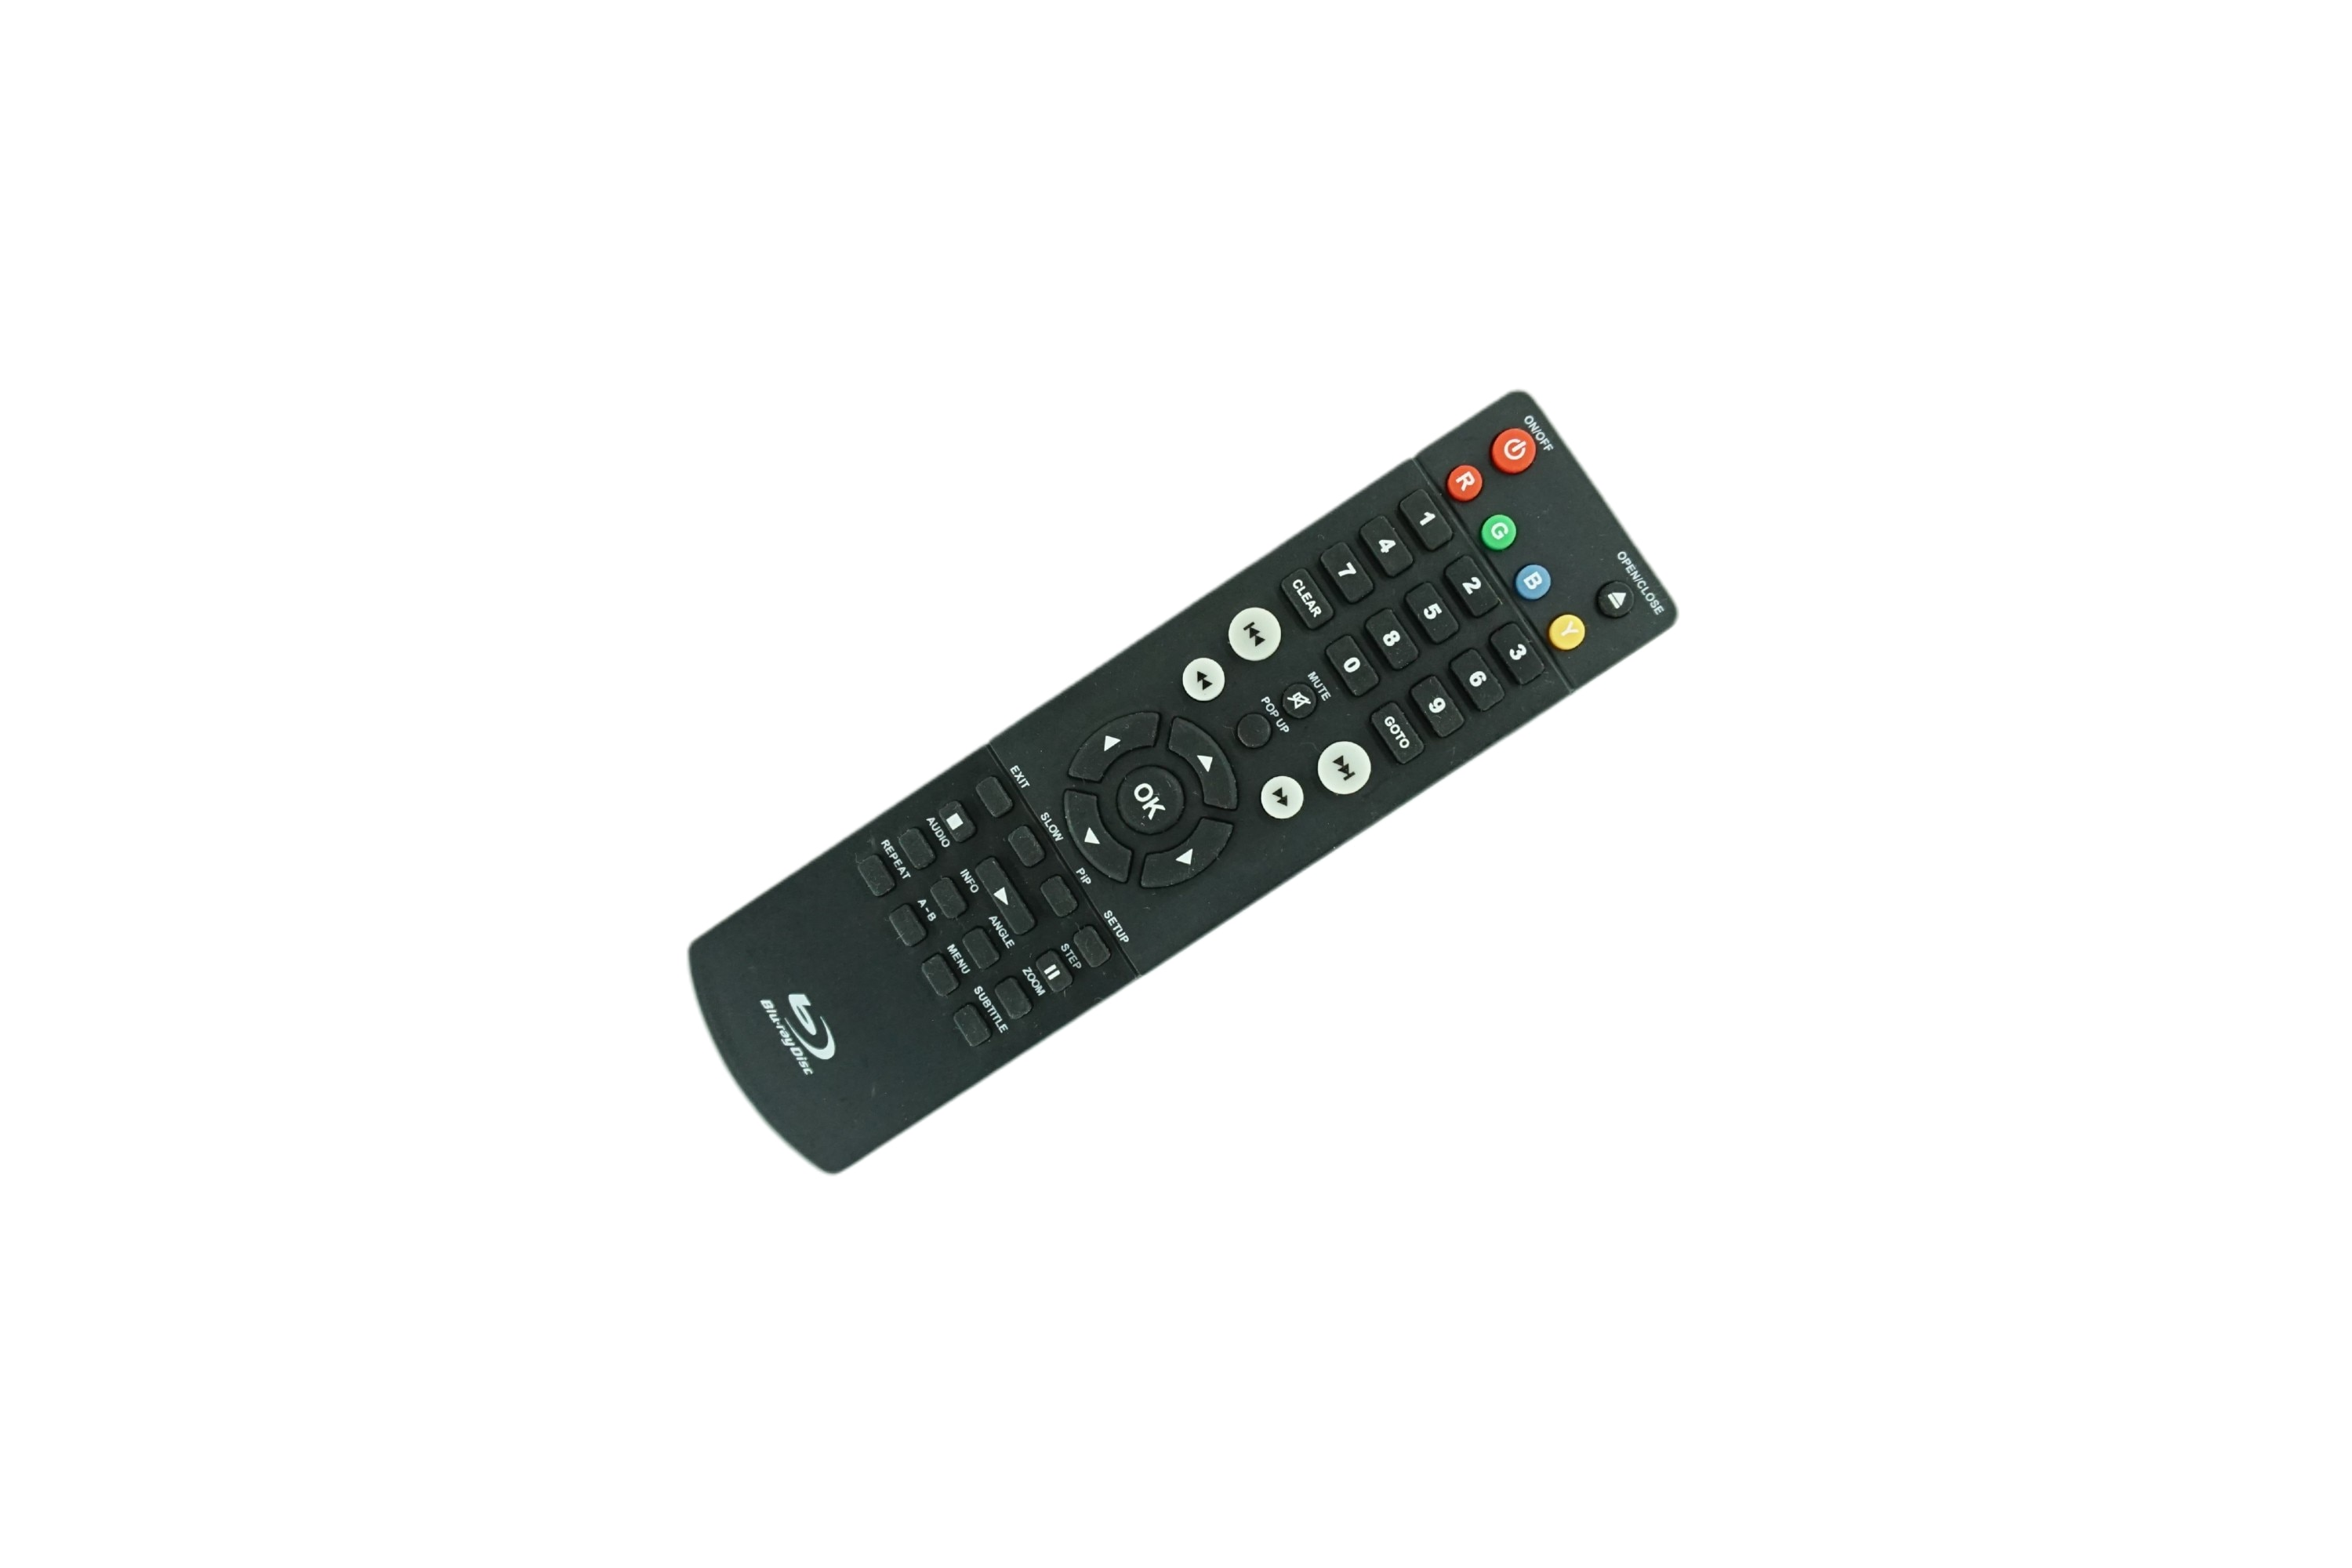 90% New Remote Control For RCA BRC3087 BRC3073 Blu-ray DVD Home Theater System Player